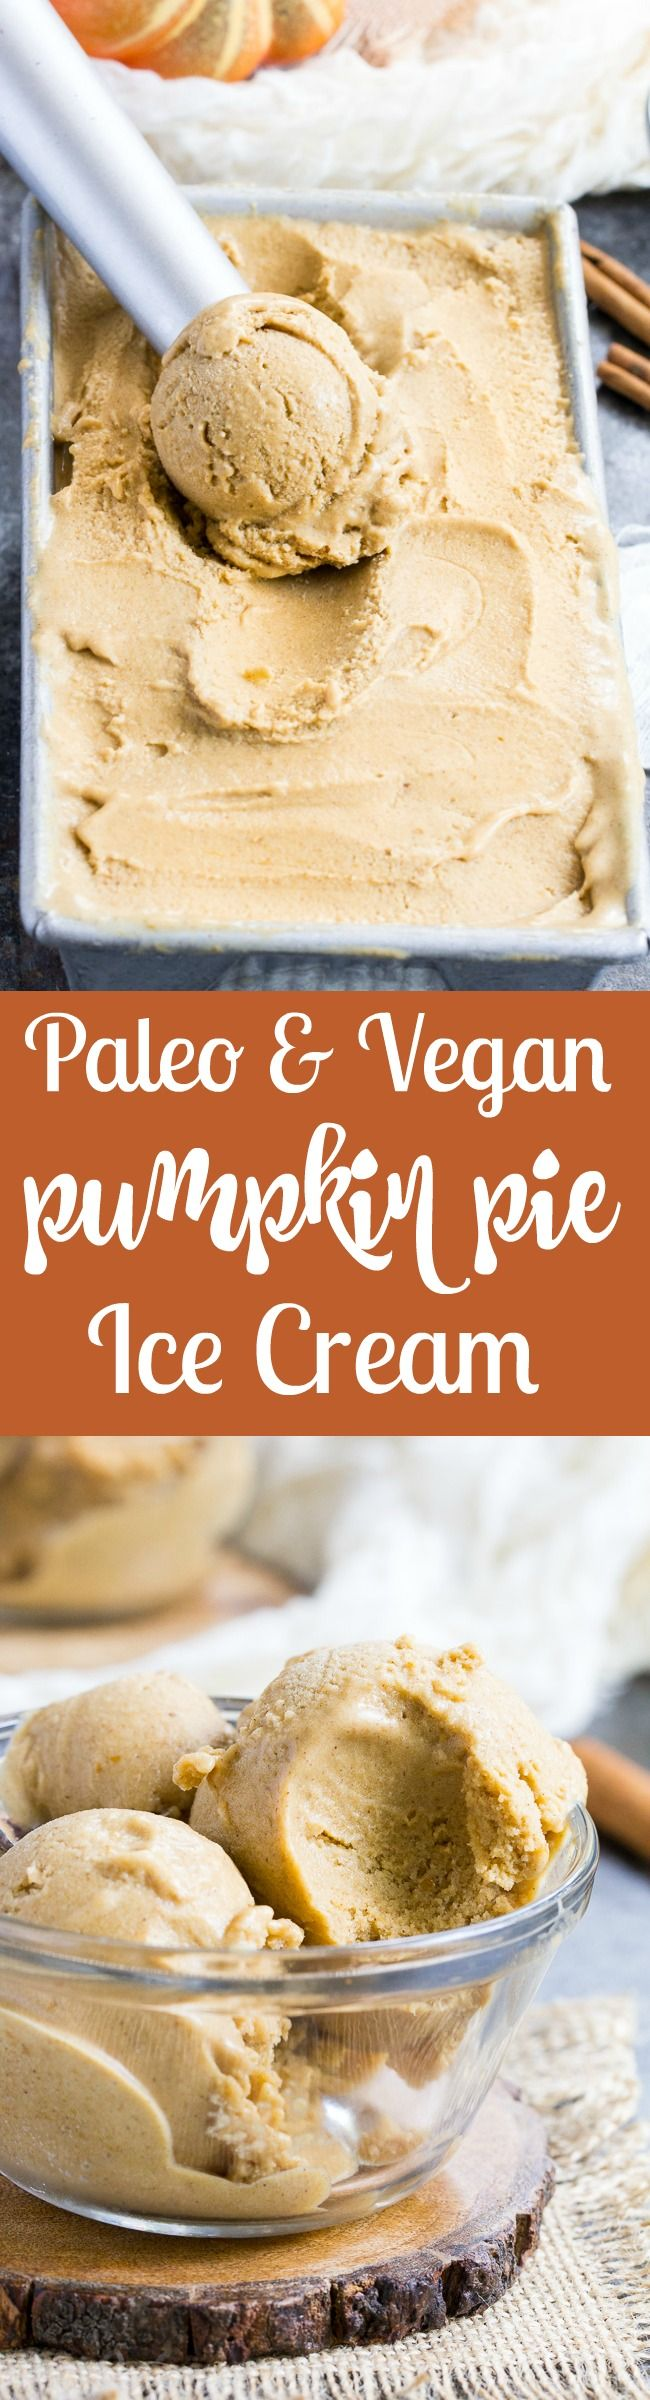 This Pumpkin Pie Paleo & Vegan Ice Cream is the perfect healthy pumpkin treat to make when you start craving all the sweet flavors of fall!  It's creamy, sweet and perfectly spiced – just like a pumpkin pie in ice cream form.  My kids can't get enough!  Paleo, dairy-free, vegan, egg free and easy to make.